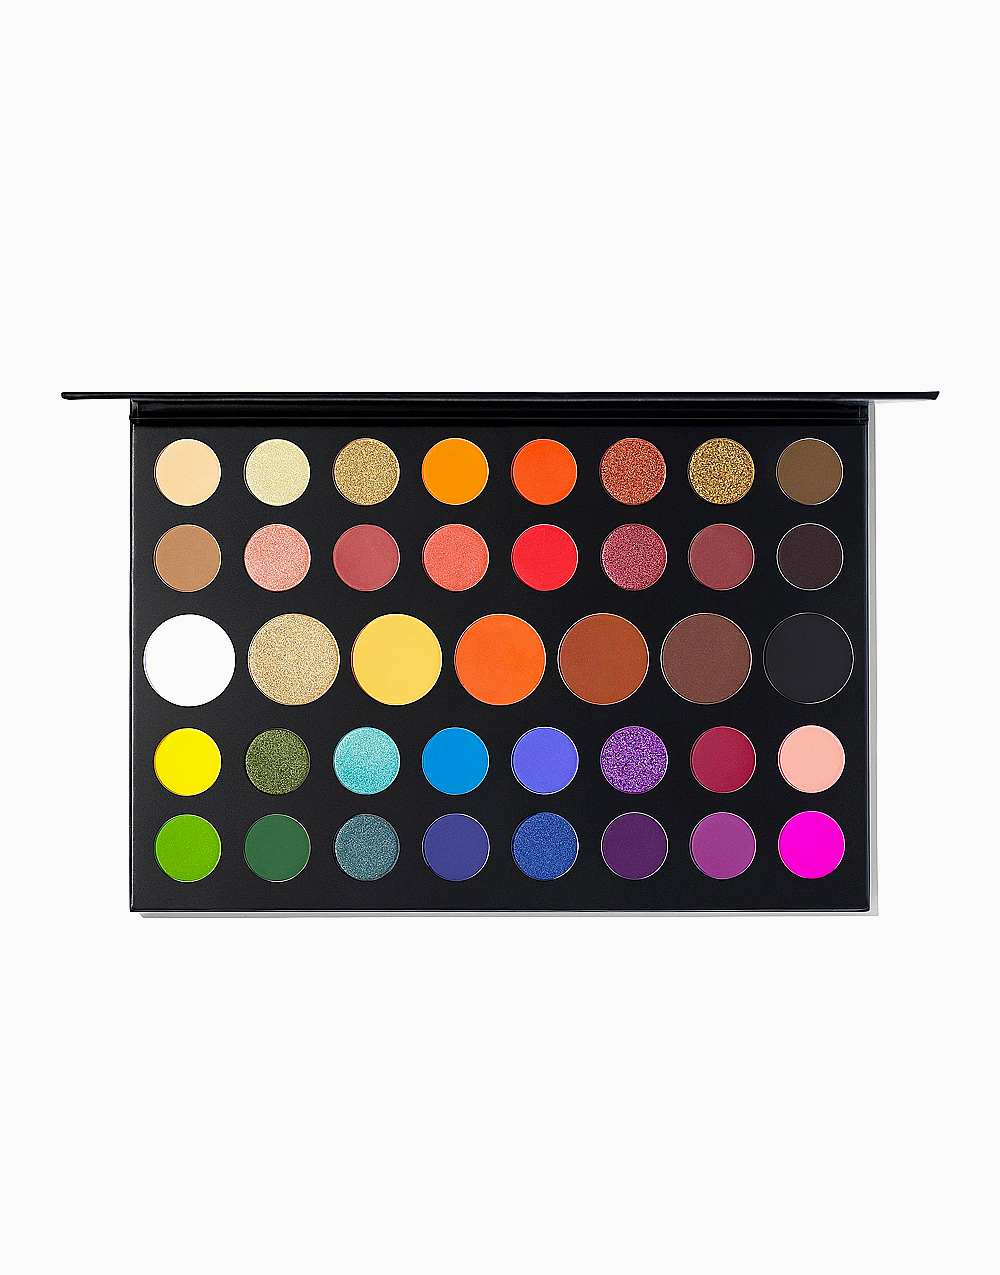 The James Charles Palette by Morphe